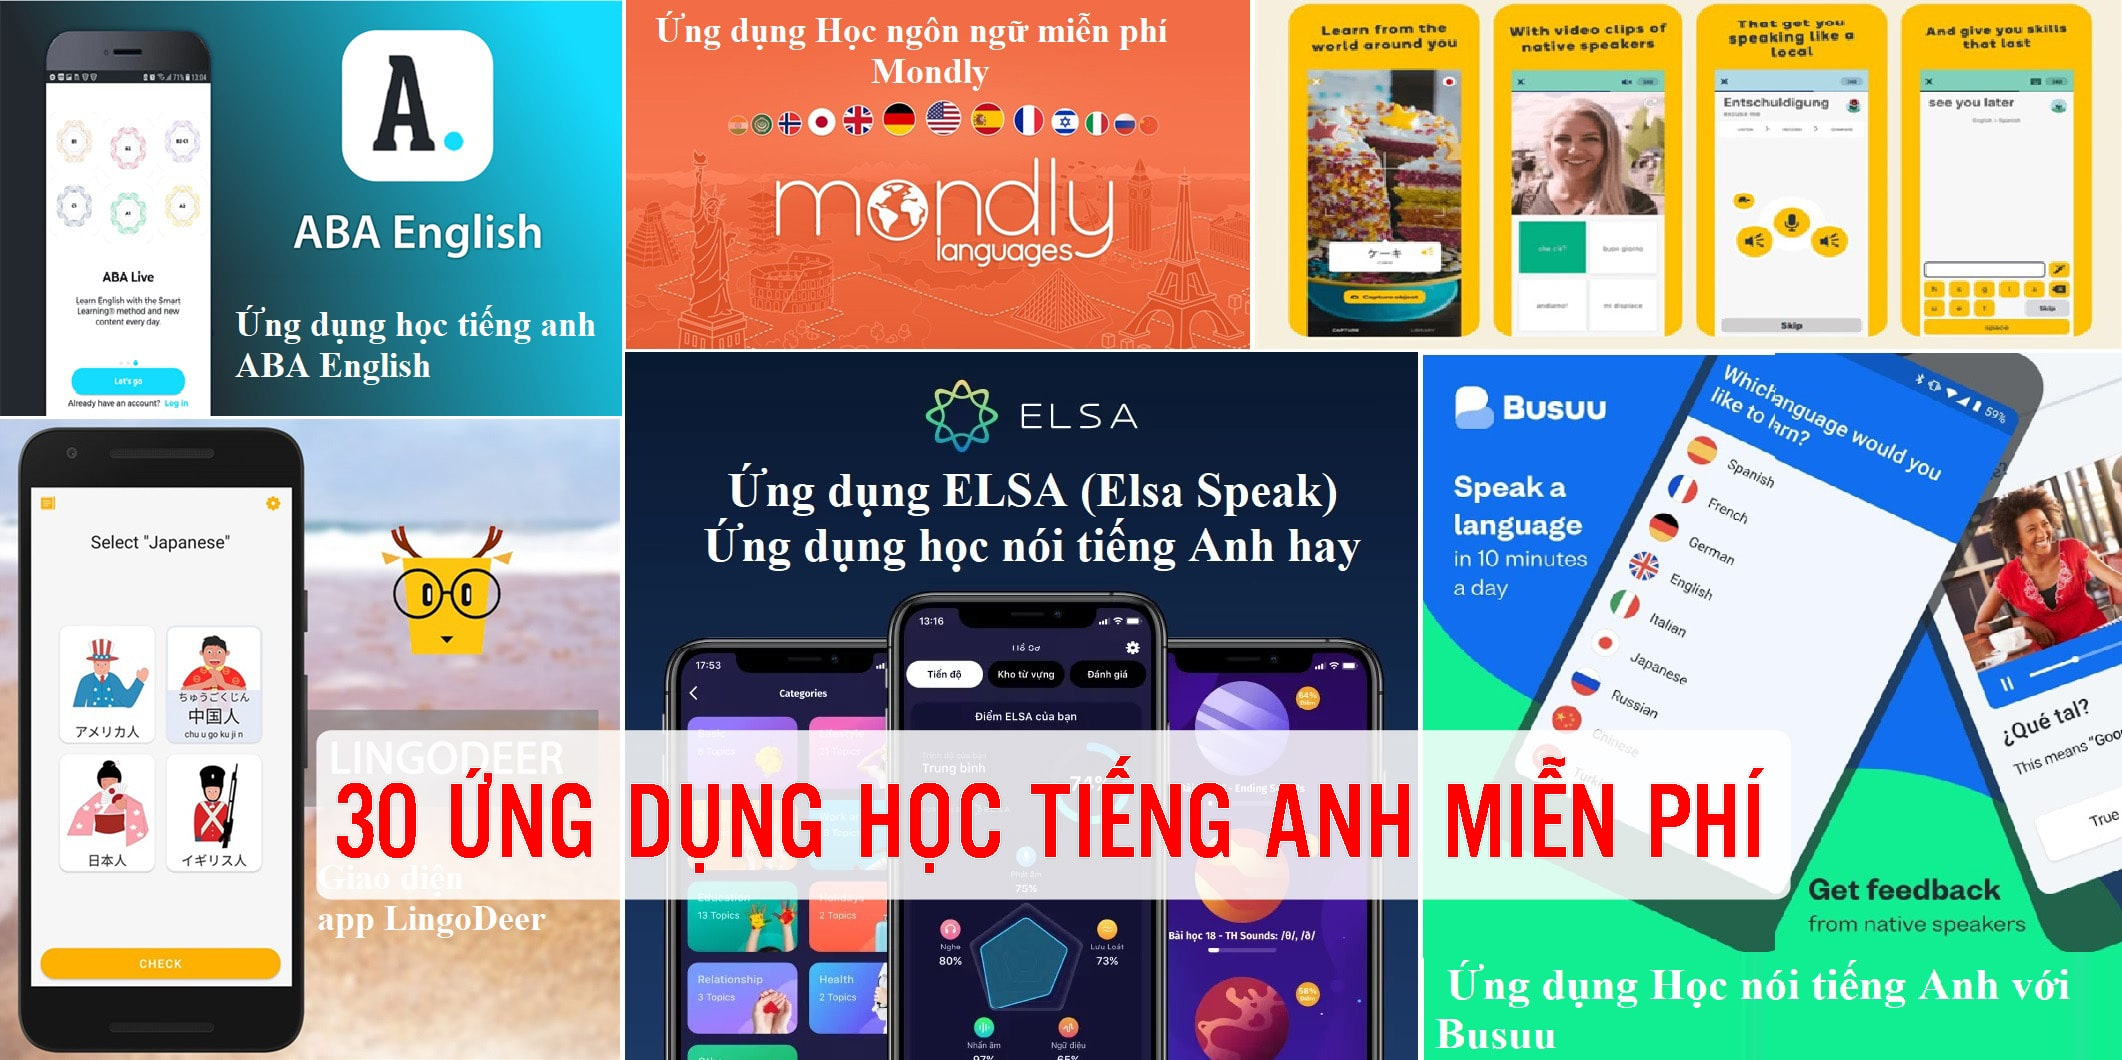 30-ung-dung-hoc-tieng-anh-mien-phi